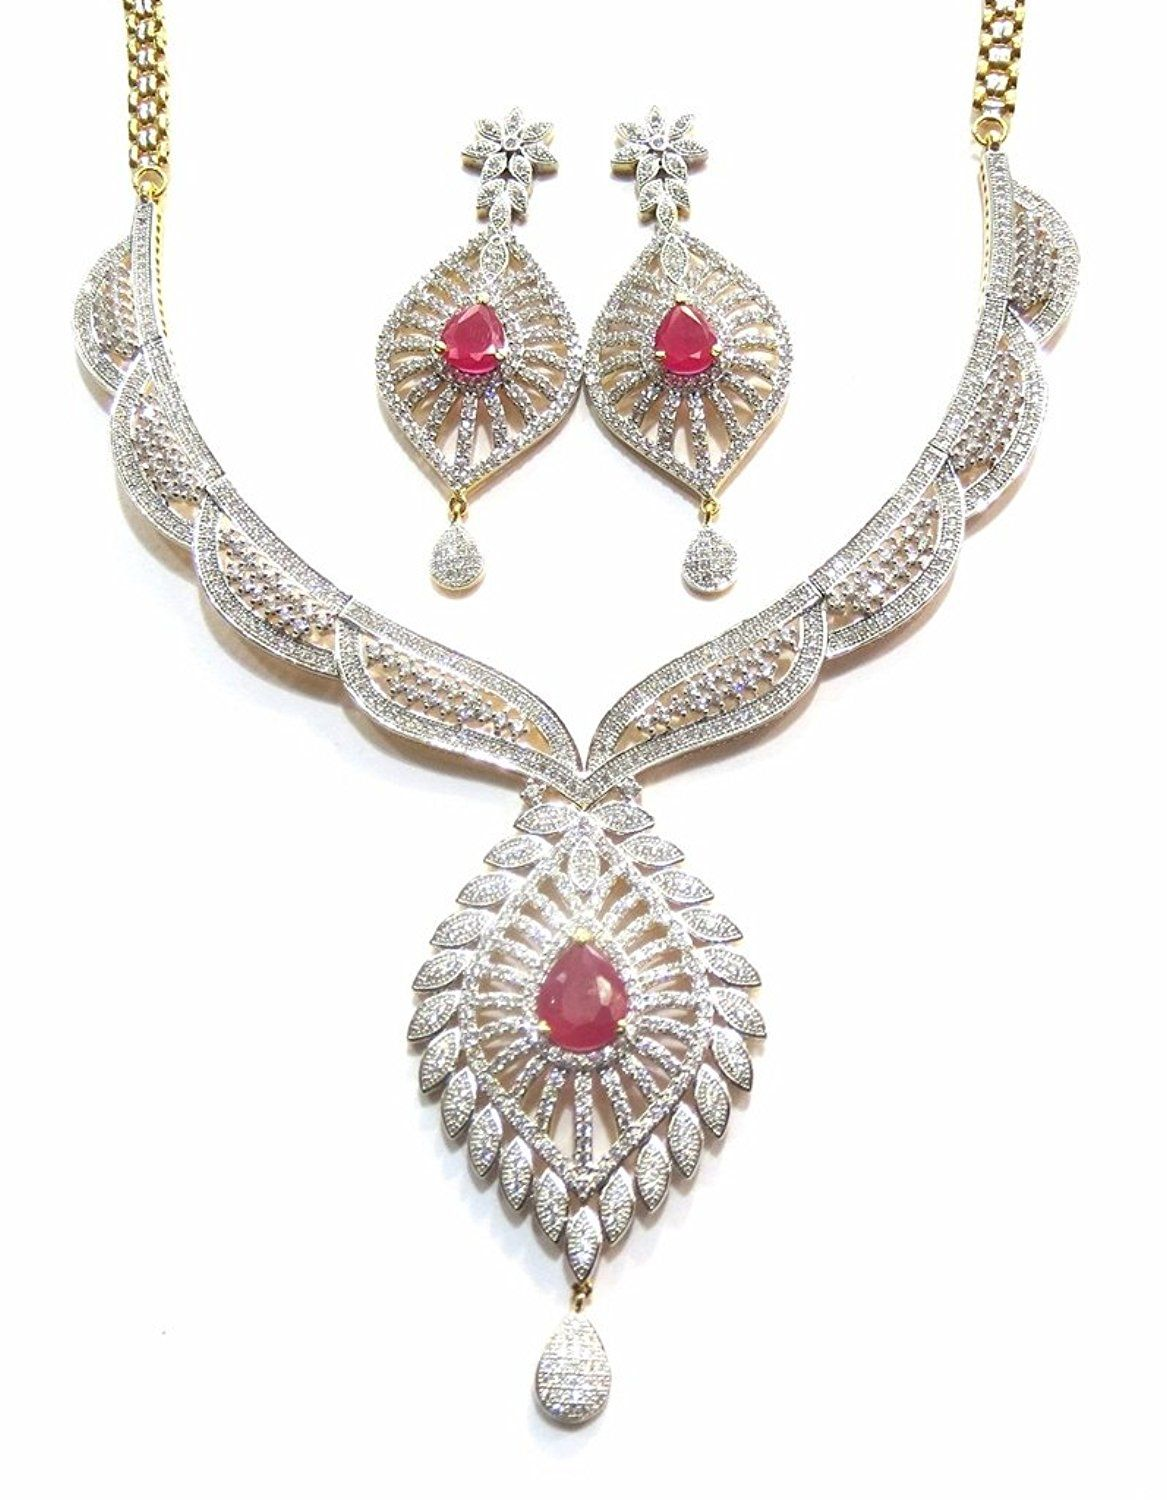 Jewelshingar jewellery cubic zirconias gold plated necklace set for